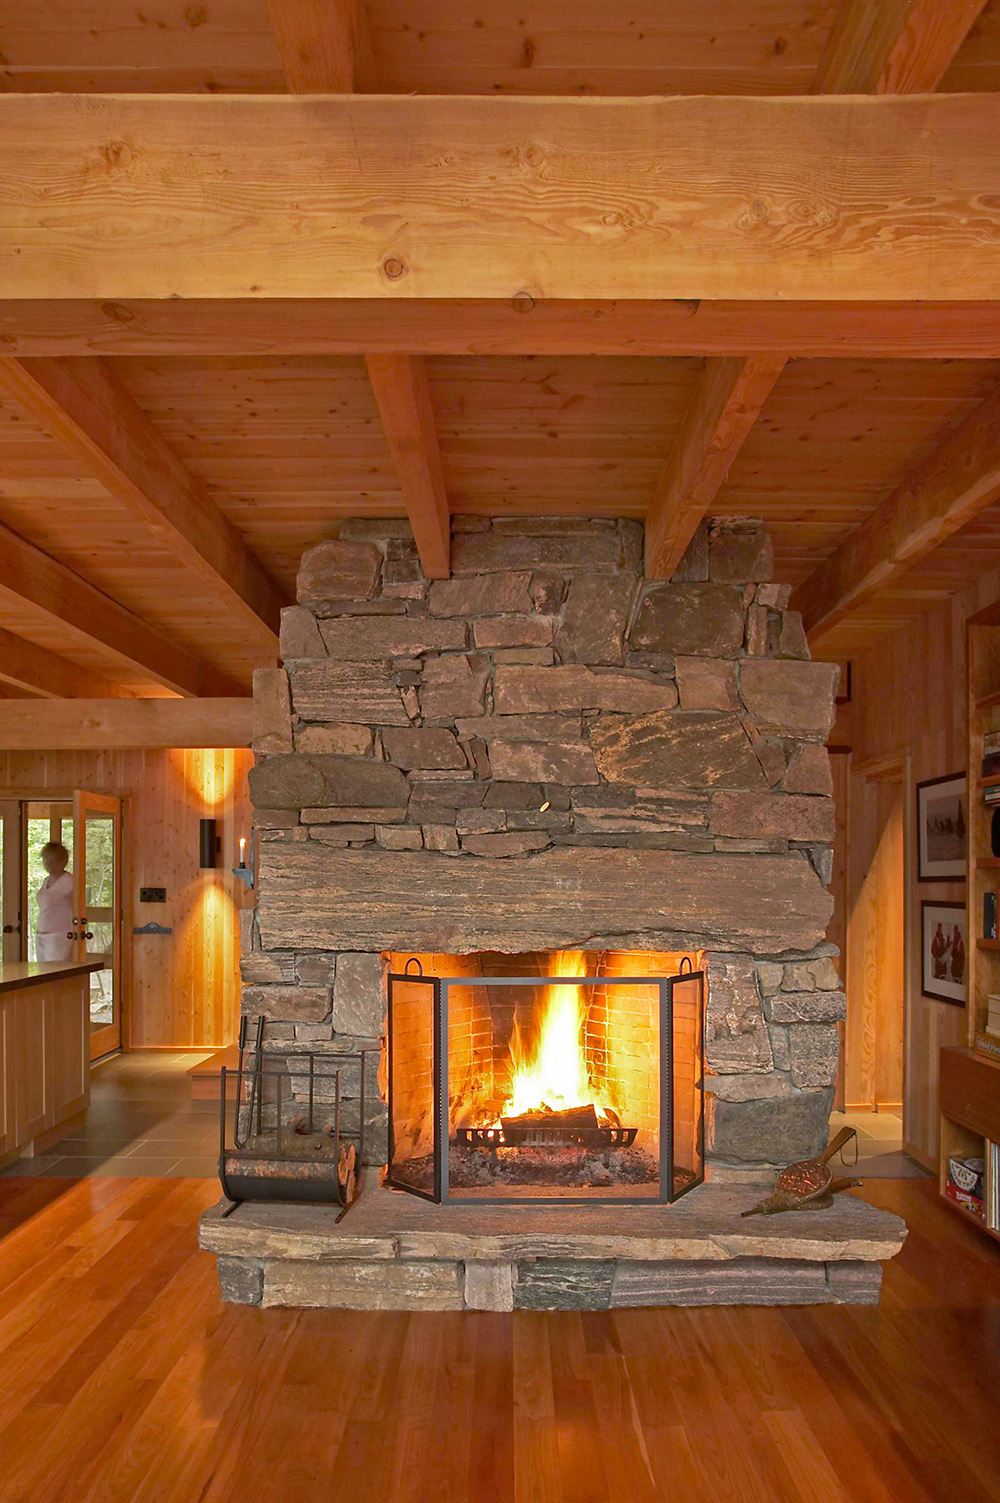 Rustic granite wood-burning fireplace in a timber-framed Muskoka living room.